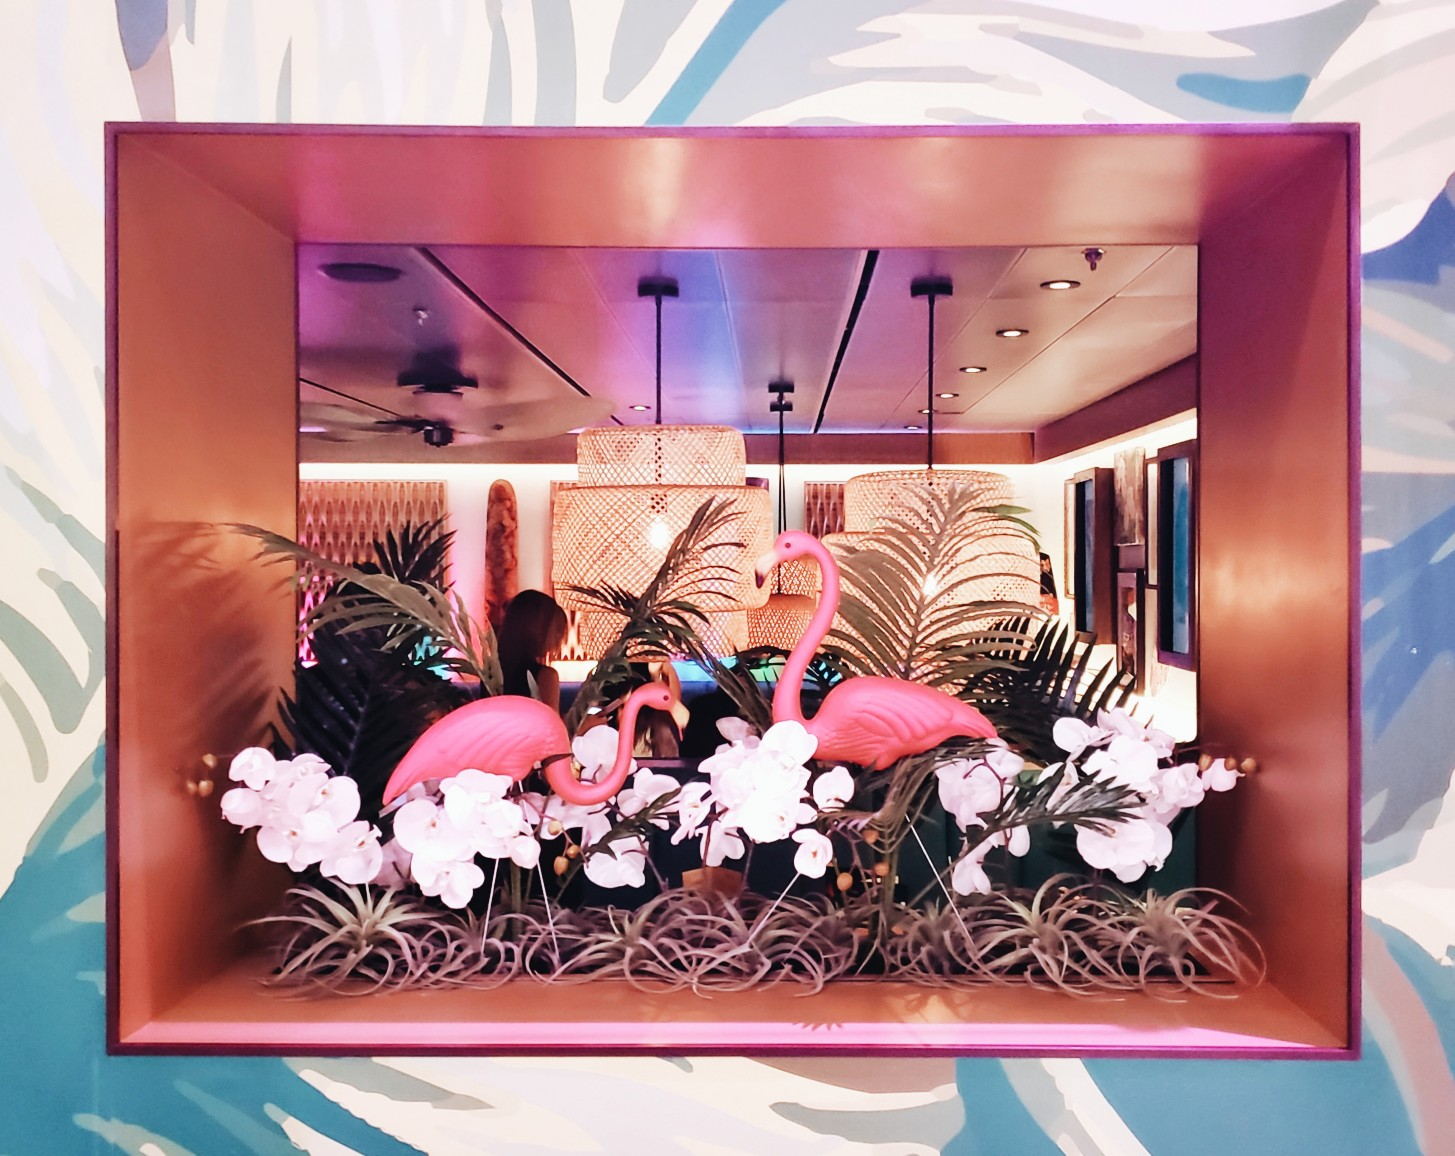 Royal Caribbean Interior Bamboo Room Pink Flamingos on the window